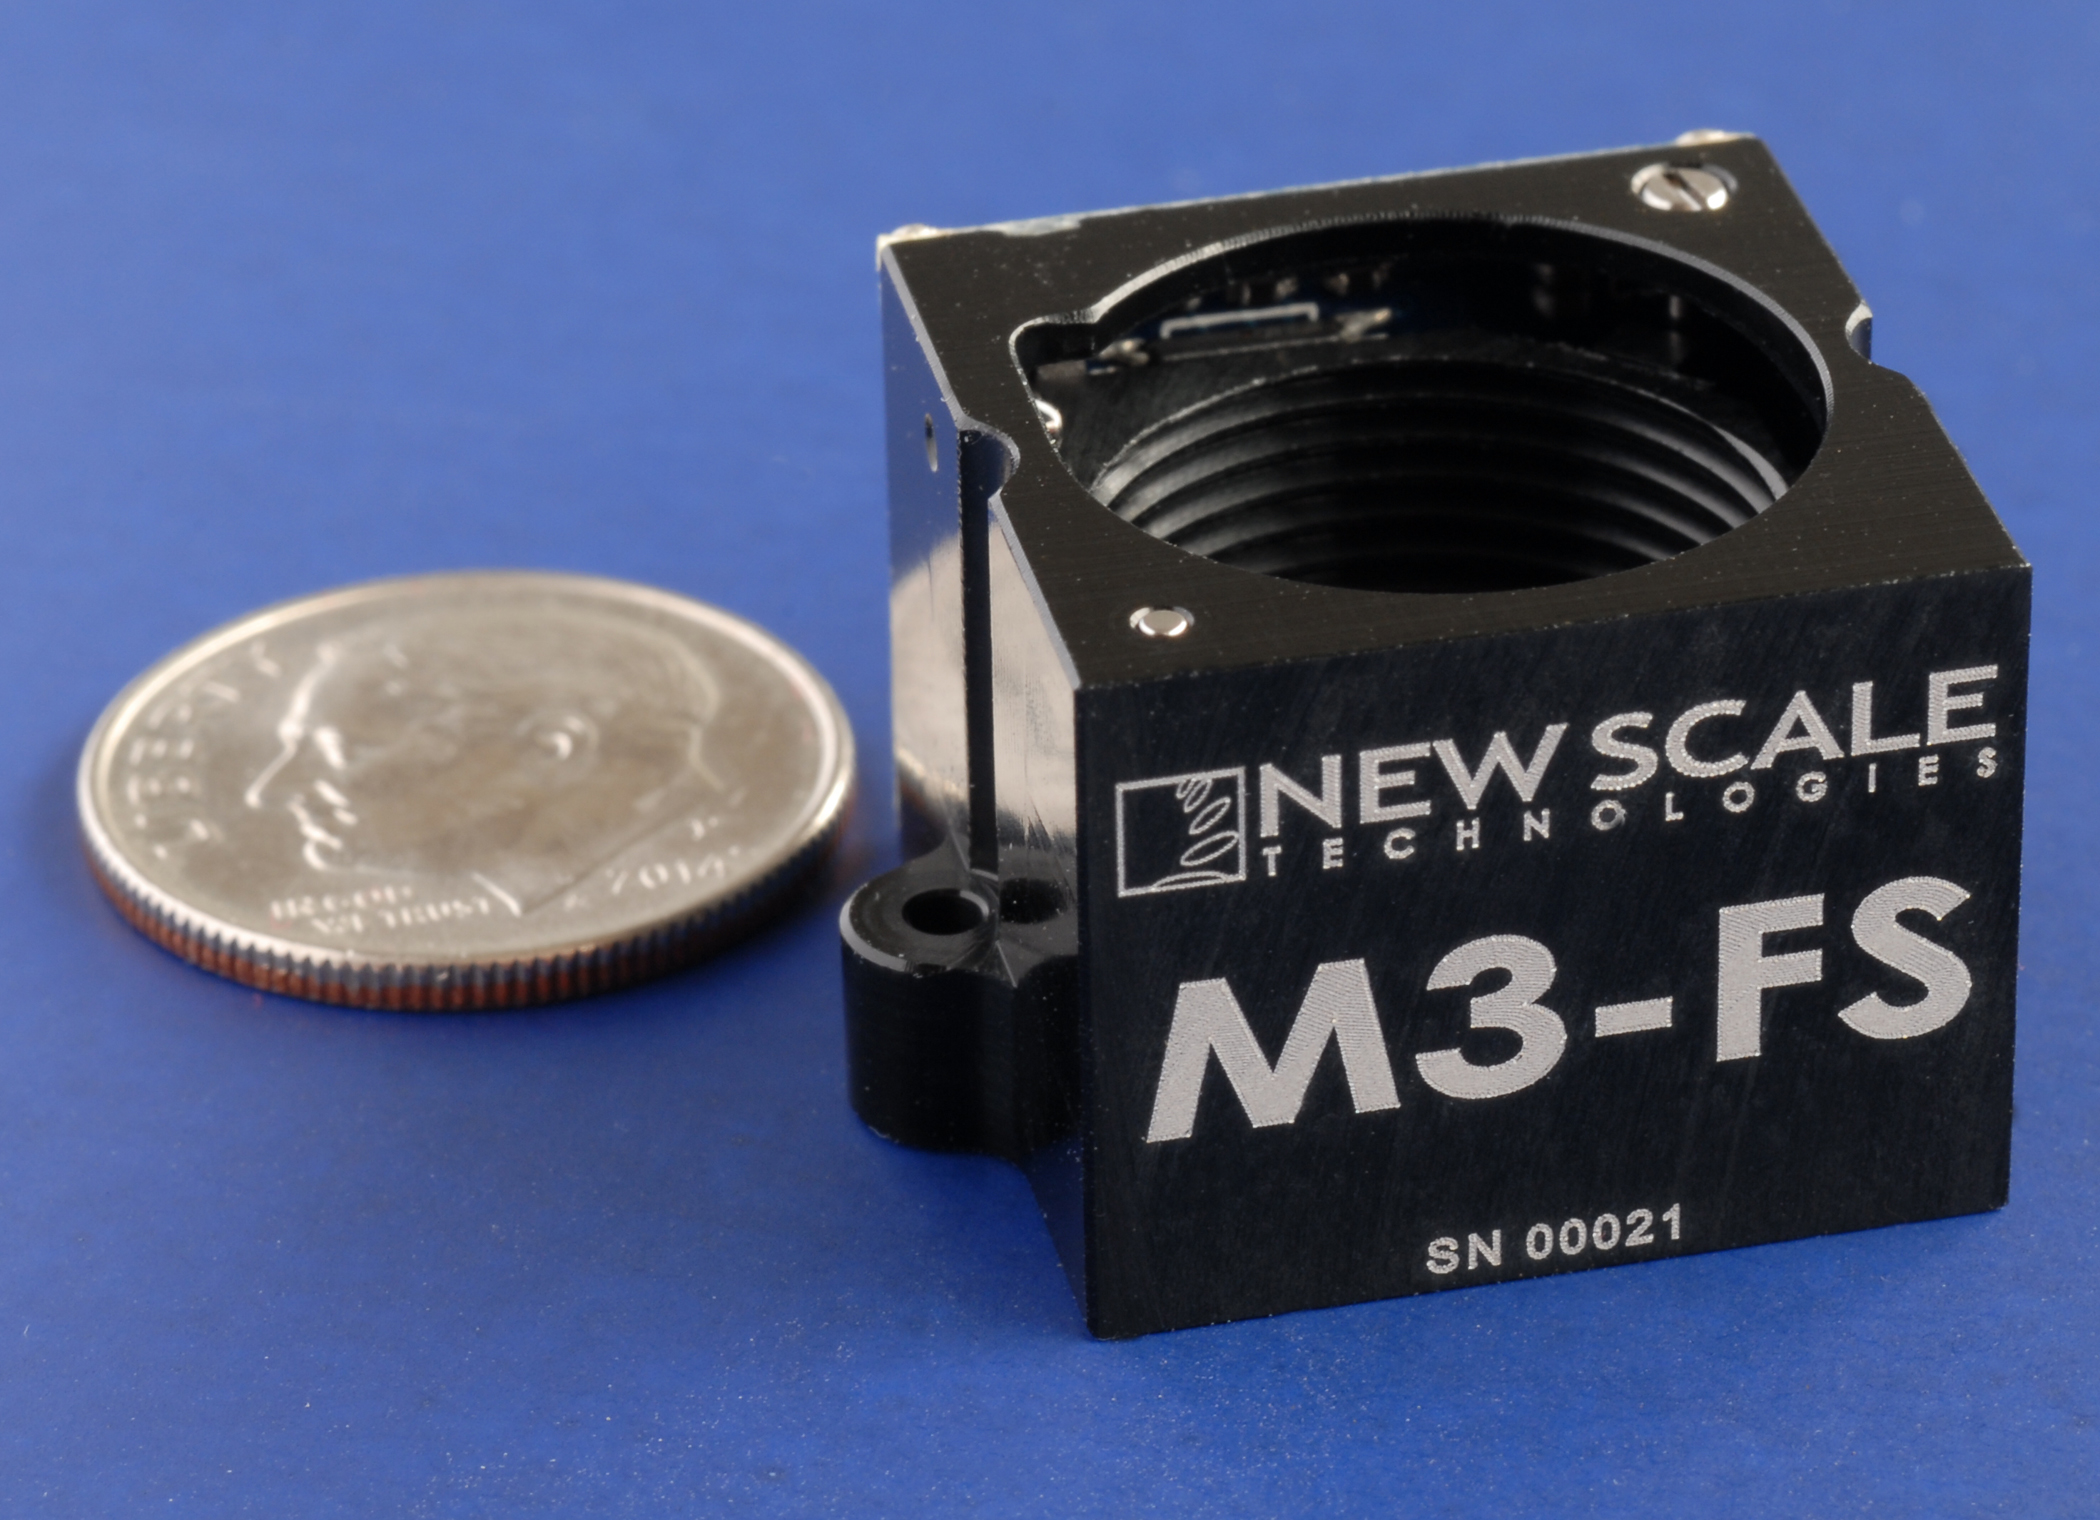 New Scale Technologies' mini all-in-one focus module has improved tilt, accuracy and dynamic stability for high-performance embedded camera systems